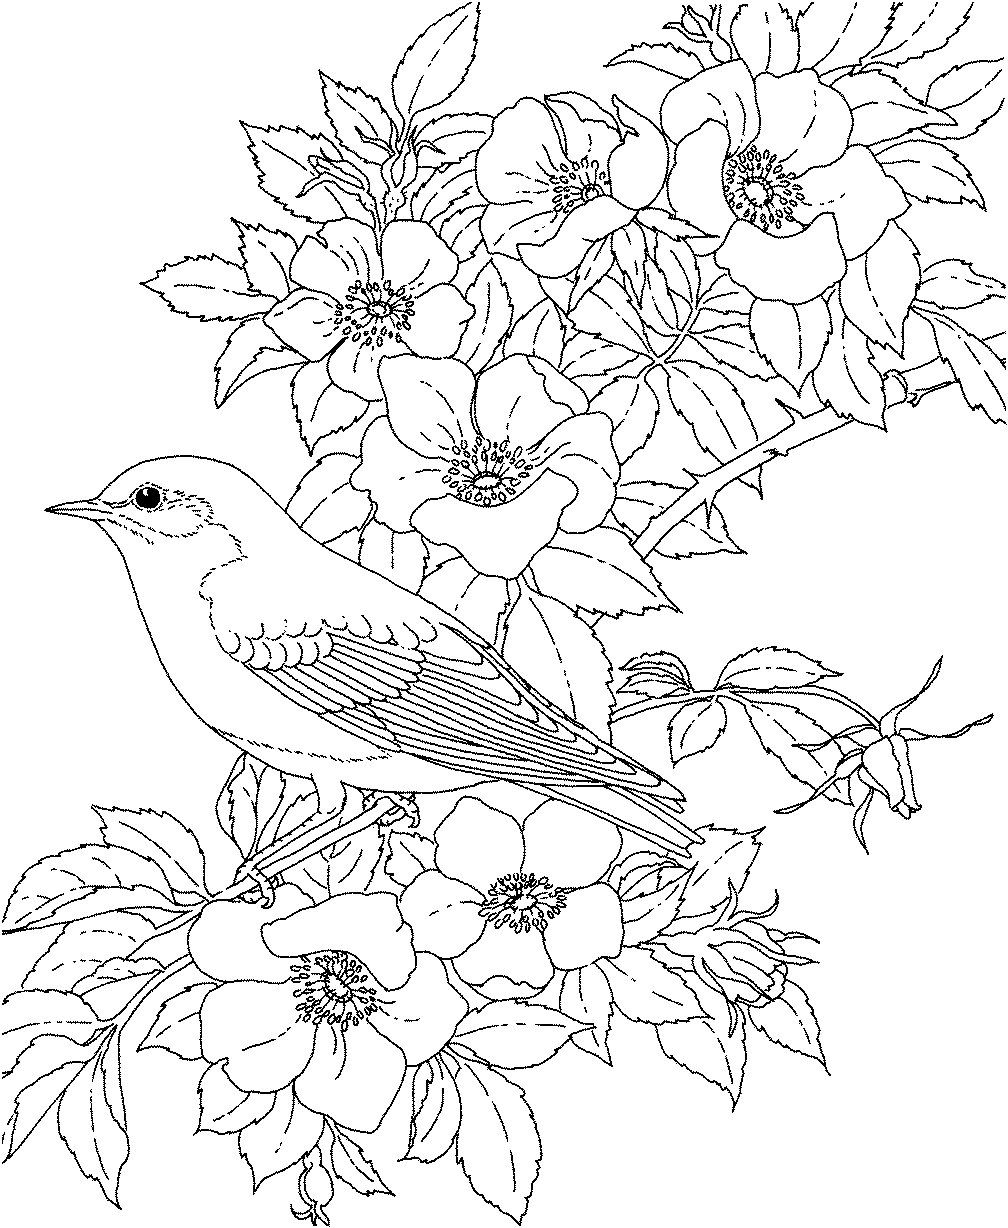 3 bird coloring pages downloadable printable blue by naturepoet 200 - Bird Coloring Sheet 3